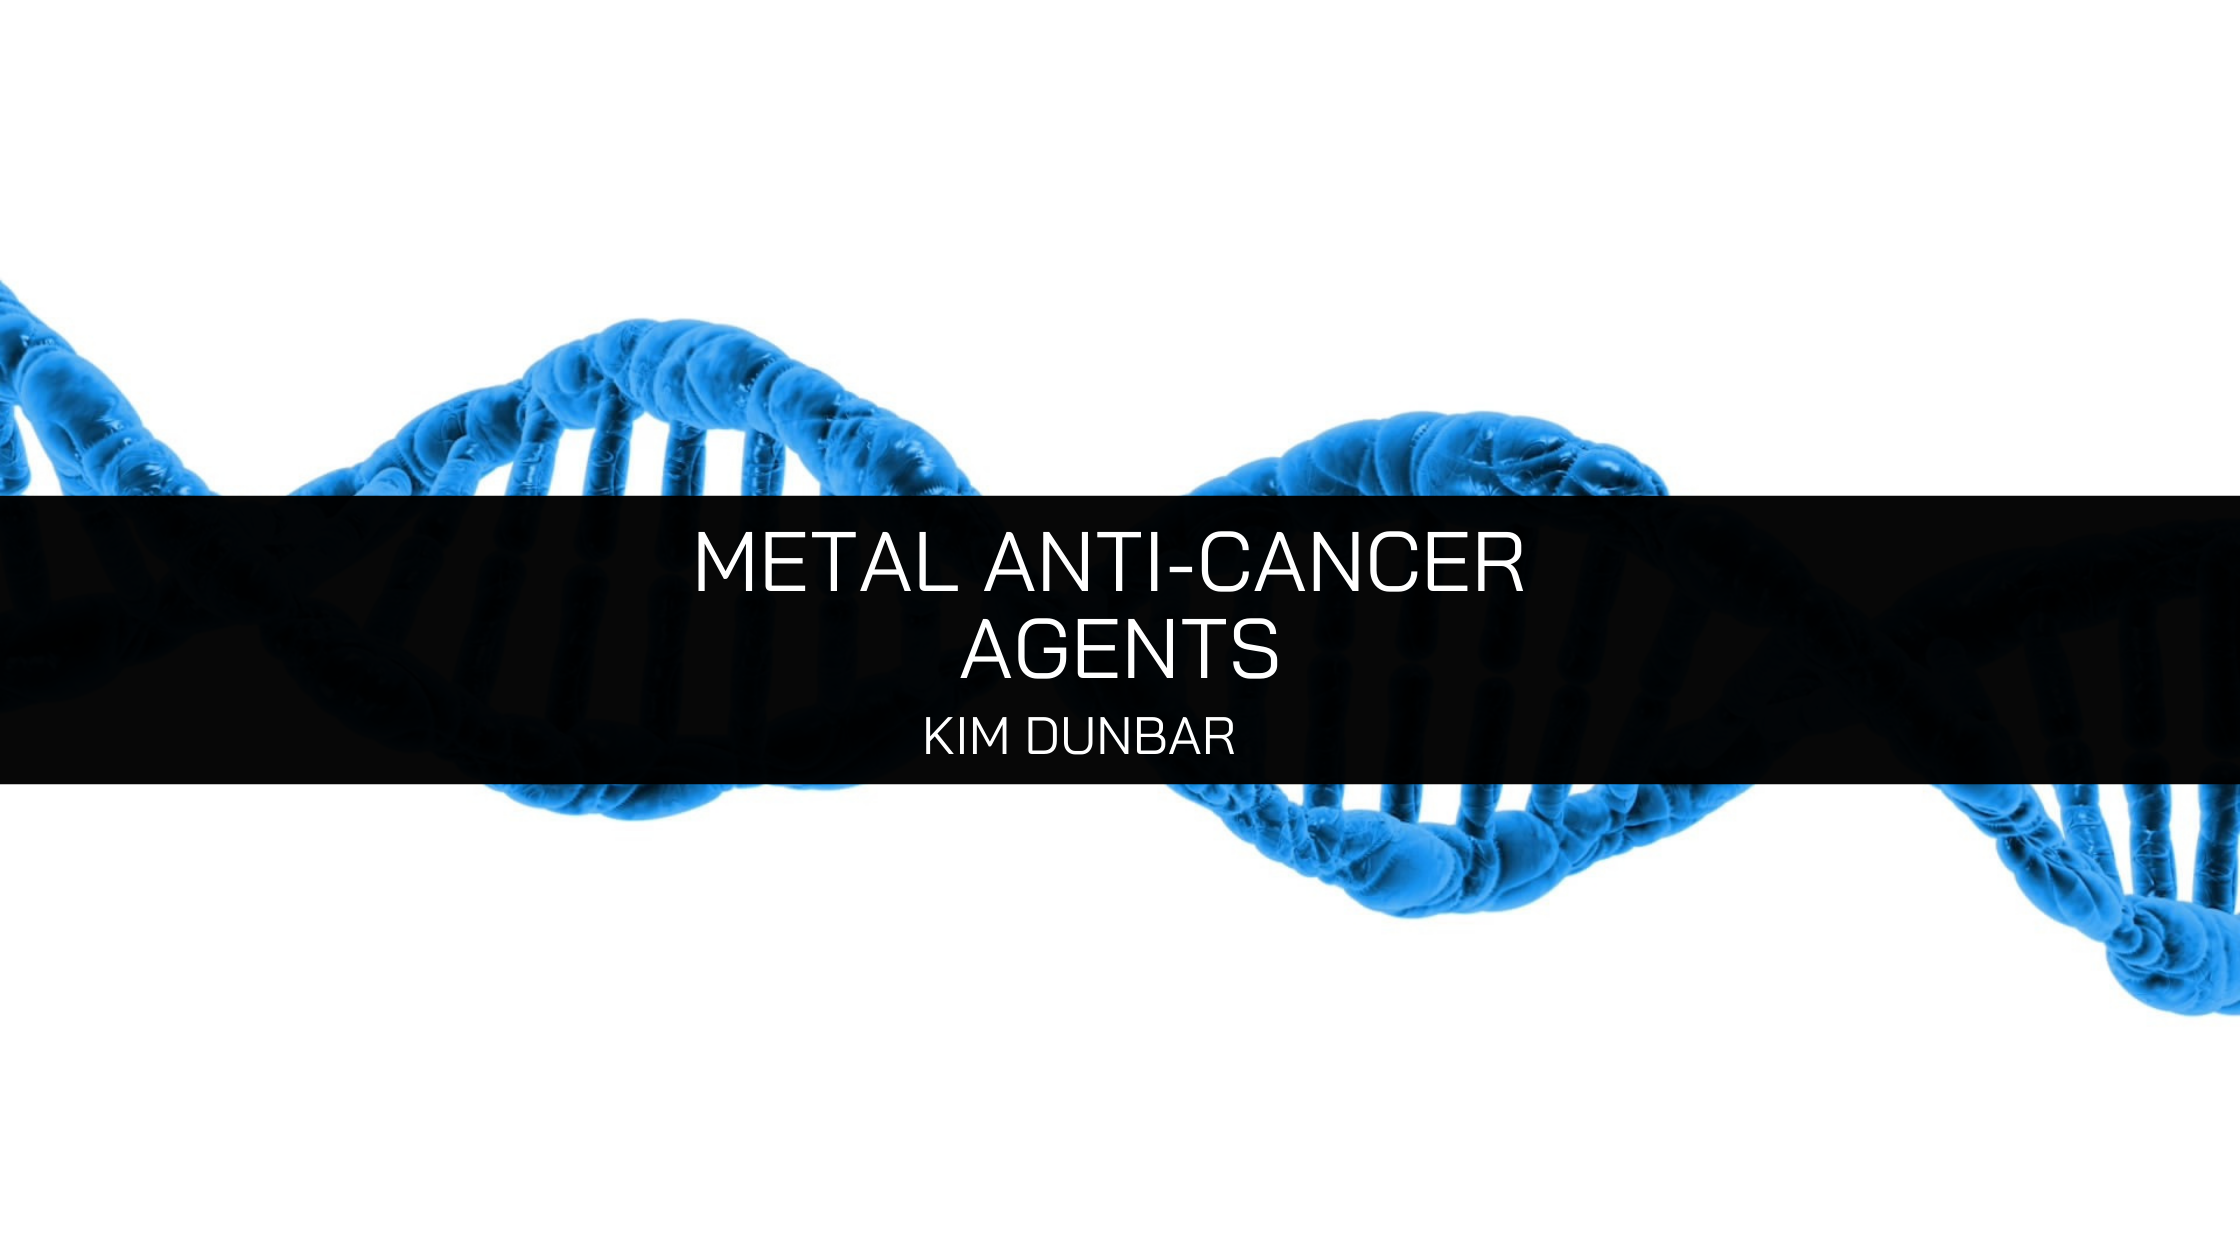 Kim Dunbar's Research In Metal Anti-Cancer Agents